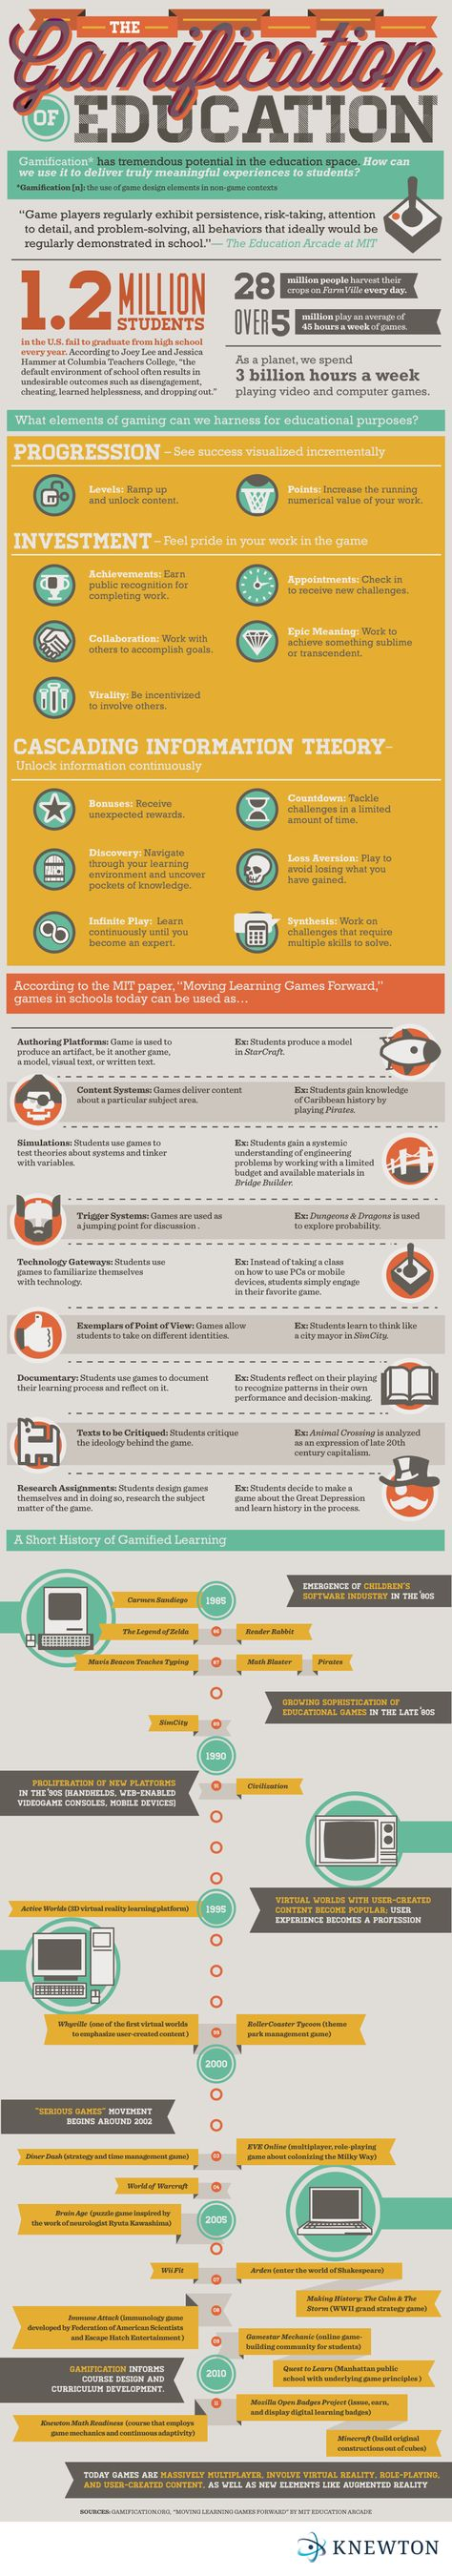 Where Does Gamification Fit in Higher Education? [#Infographic]